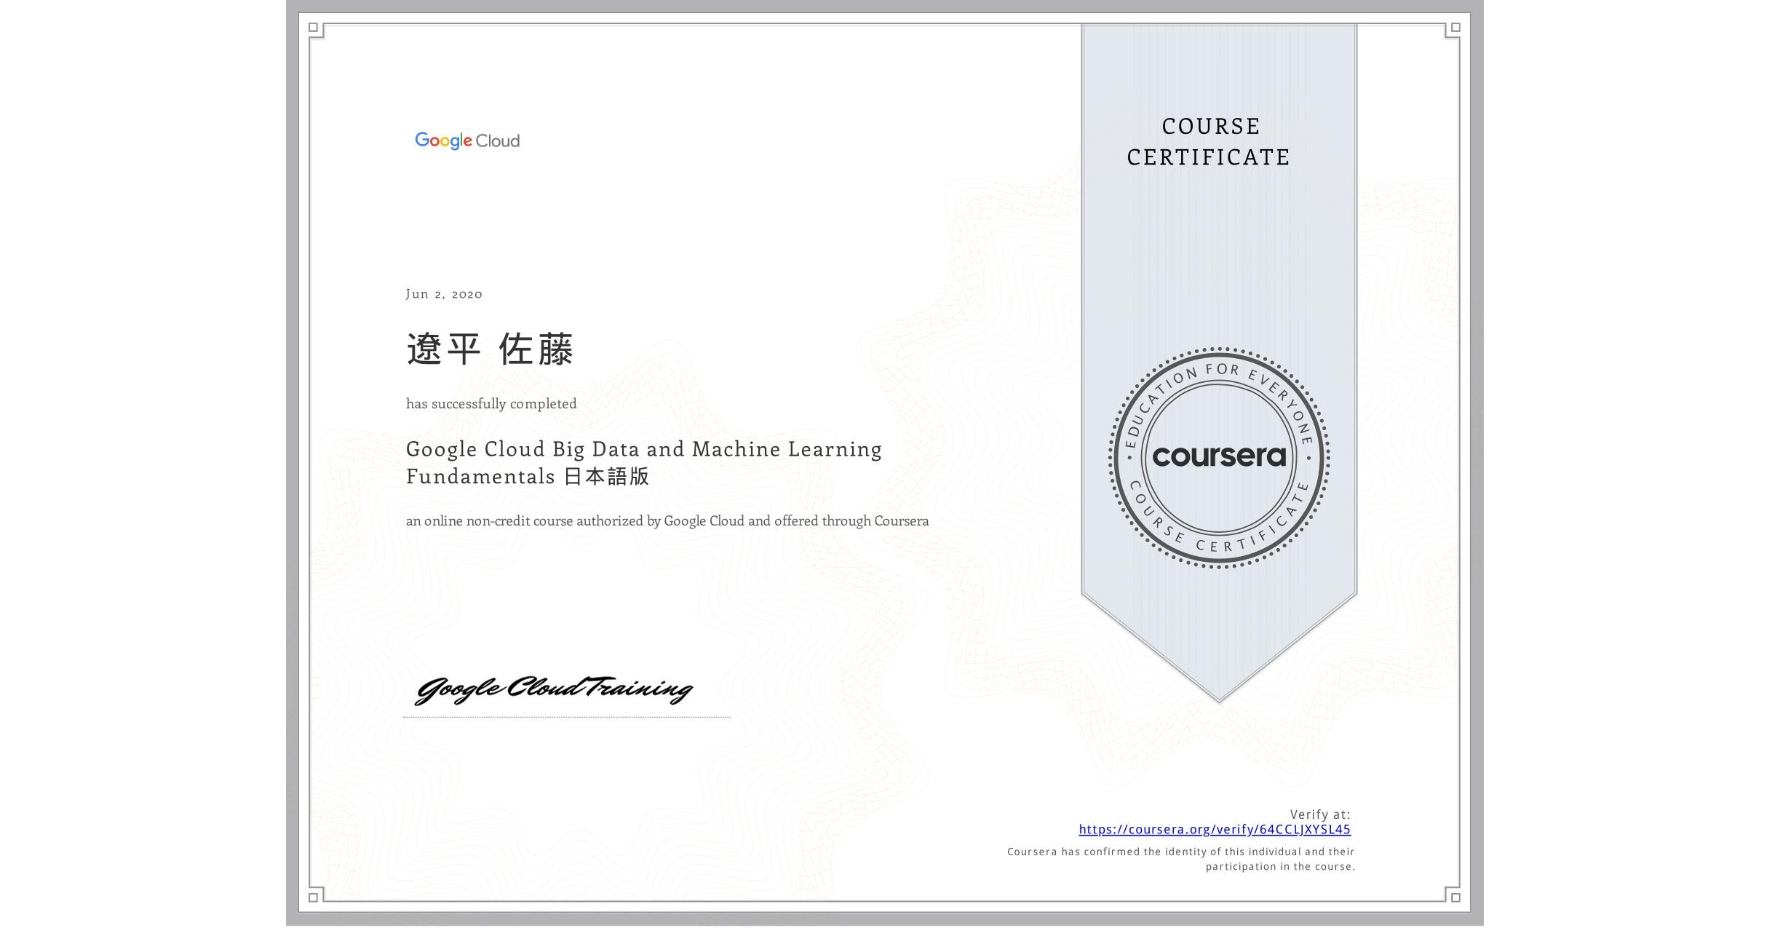 View certificate for 遼平 佐藤, Google Cloud Platform Big Data and Machine Learning Fundamentals 日本語版, an online non-credit course authorized by Google Cloud and offered through Coursera